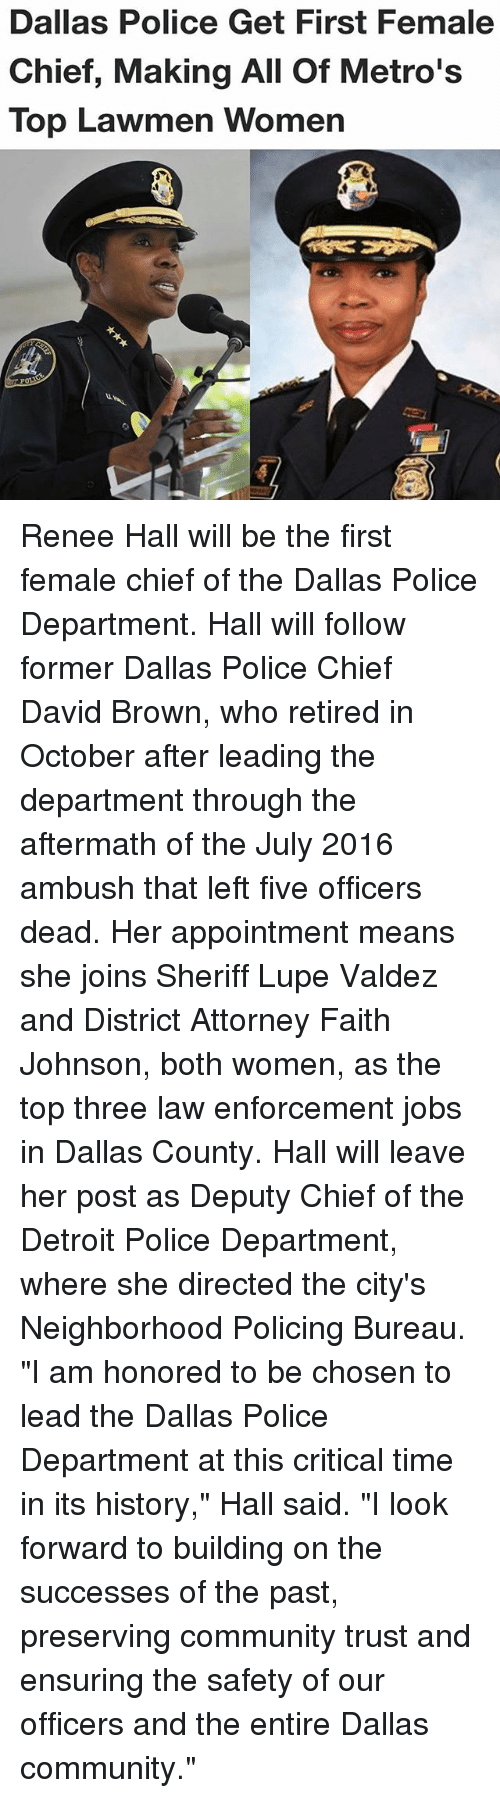 """Chiefing: Dallas Police Get First Female  Chief, Making All Of Metro's  Top Lawmen Women Renee Hall will be the first female chief of the Dallas Police Department. Hall will follow former Dallas Police Chief David Brown, who retired in October after leading the department through the aftermath of the July 2016 ambush that left five officers dead. Her appointment means she joins Sheriff Lupe Valdez and District Attorney Faith Johnson, both women, as the top three law enforcement jobs in Dallas County. Hall will leave her post as Deputy Chief of the Detroit Police Department, where she directed the city's Neighborhood Policing Bureau. """"I am honored to be chosen to lead the Dallas Police Department at this critical time in its history,"""" Hall said. """"I look forward to building on the successes of the past, preserving community trust and ensuring the safety of our officers and the entire Dallas community."""""""